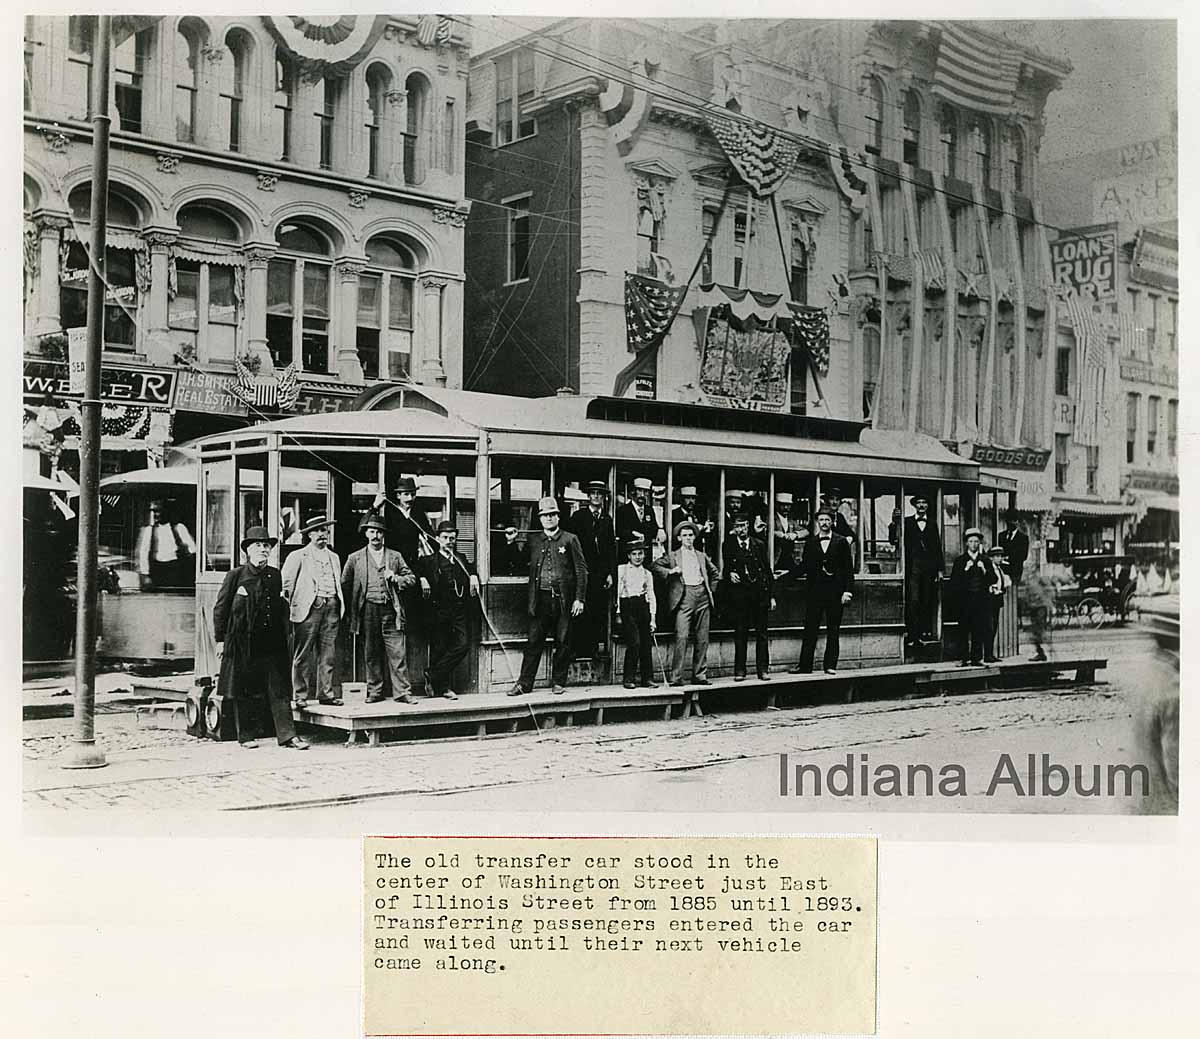 Indianapolis Then and Now: West Washington Street